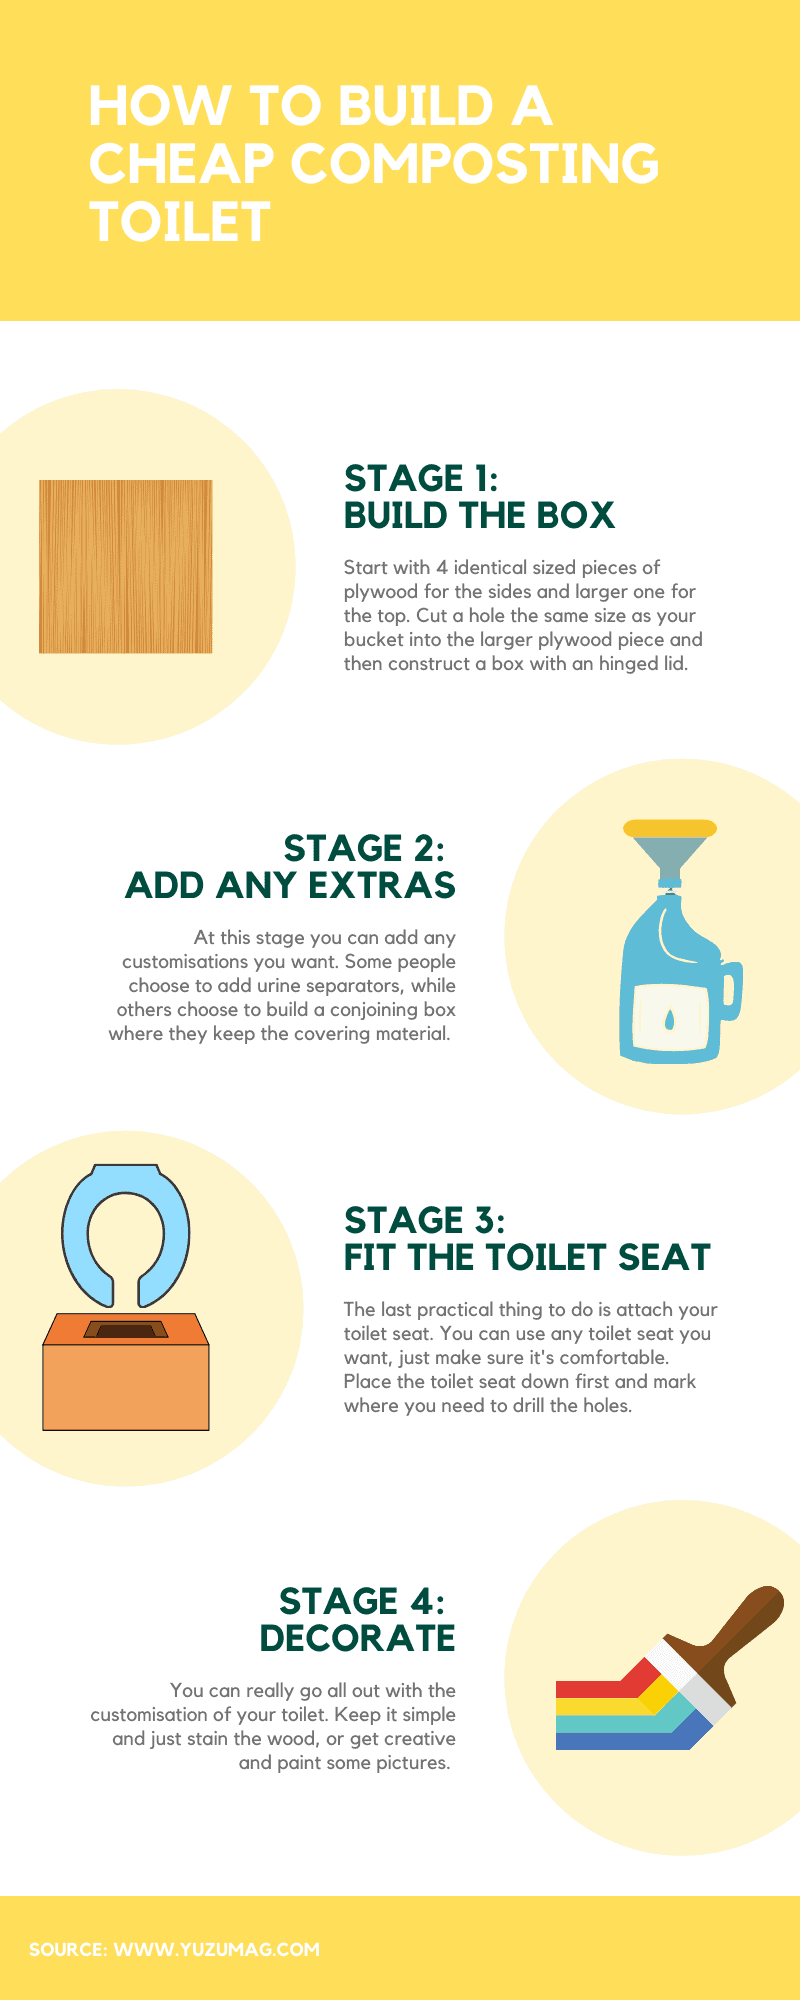 An infographic detailing how to make a cheap composting toilet